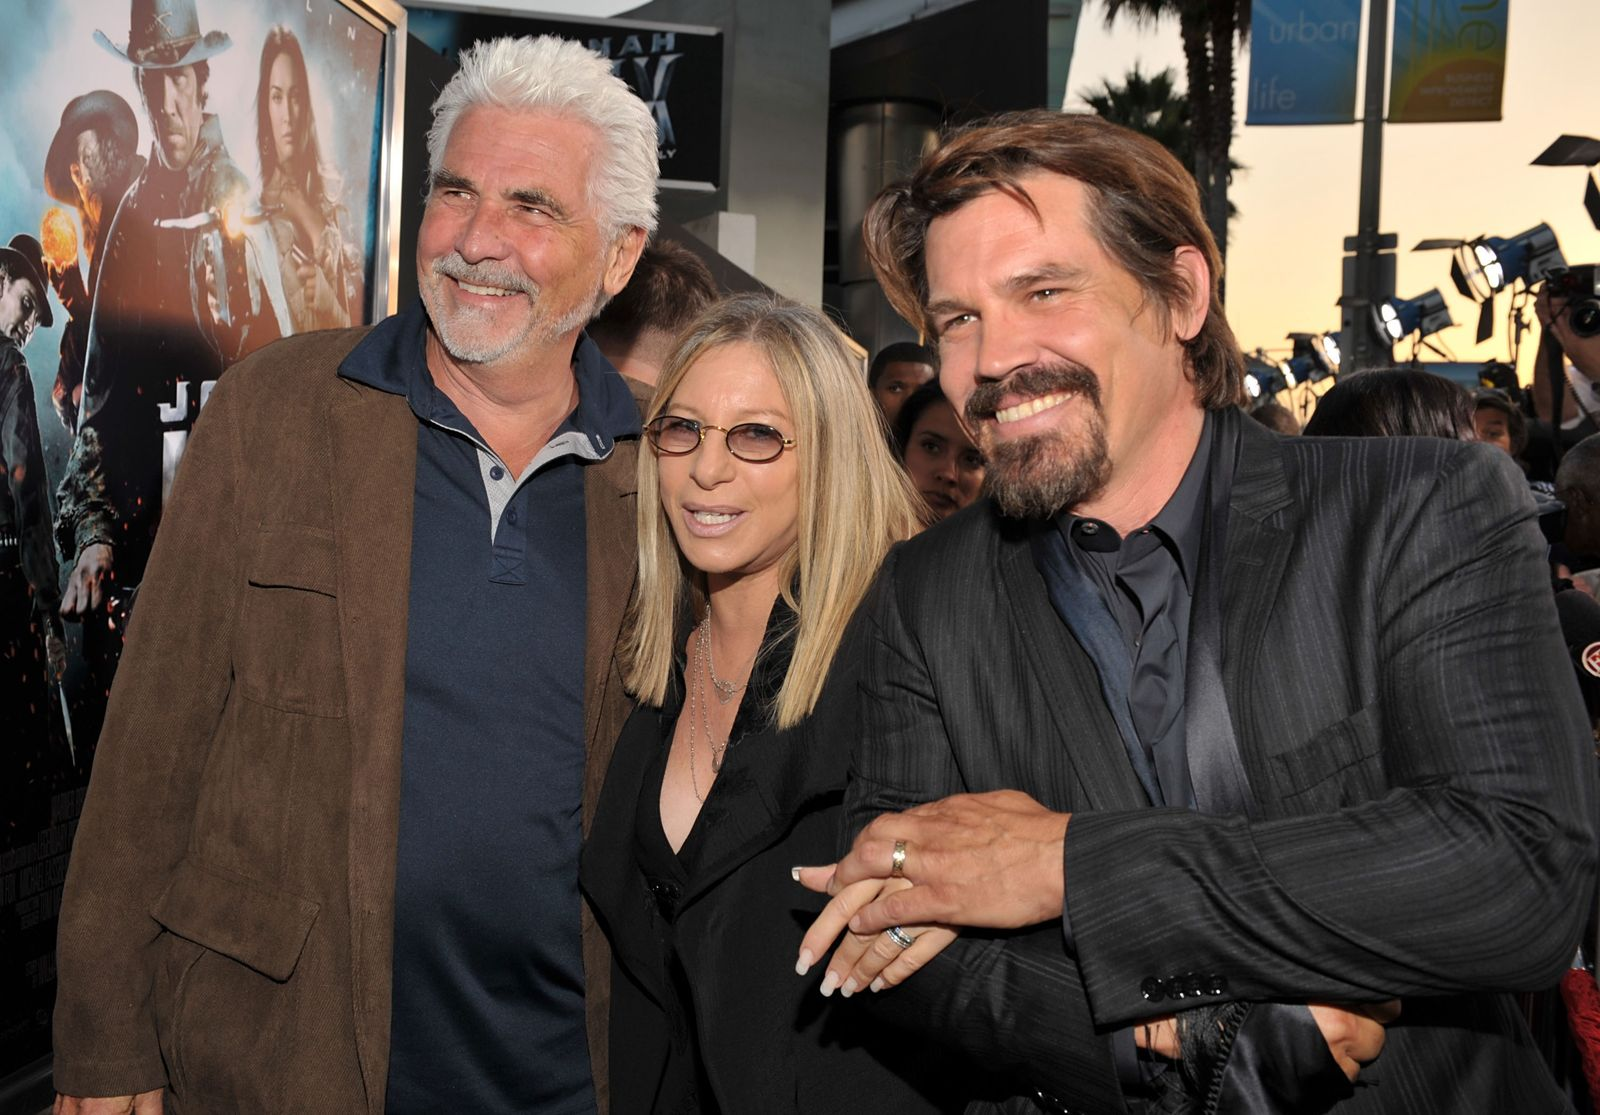 """James Brolin, Barbra Streisand, and Actor Josh Brolin at the """"Jonah Hex"""" Los Angeles premiere on June 17, 2010, in Hollywood, California 